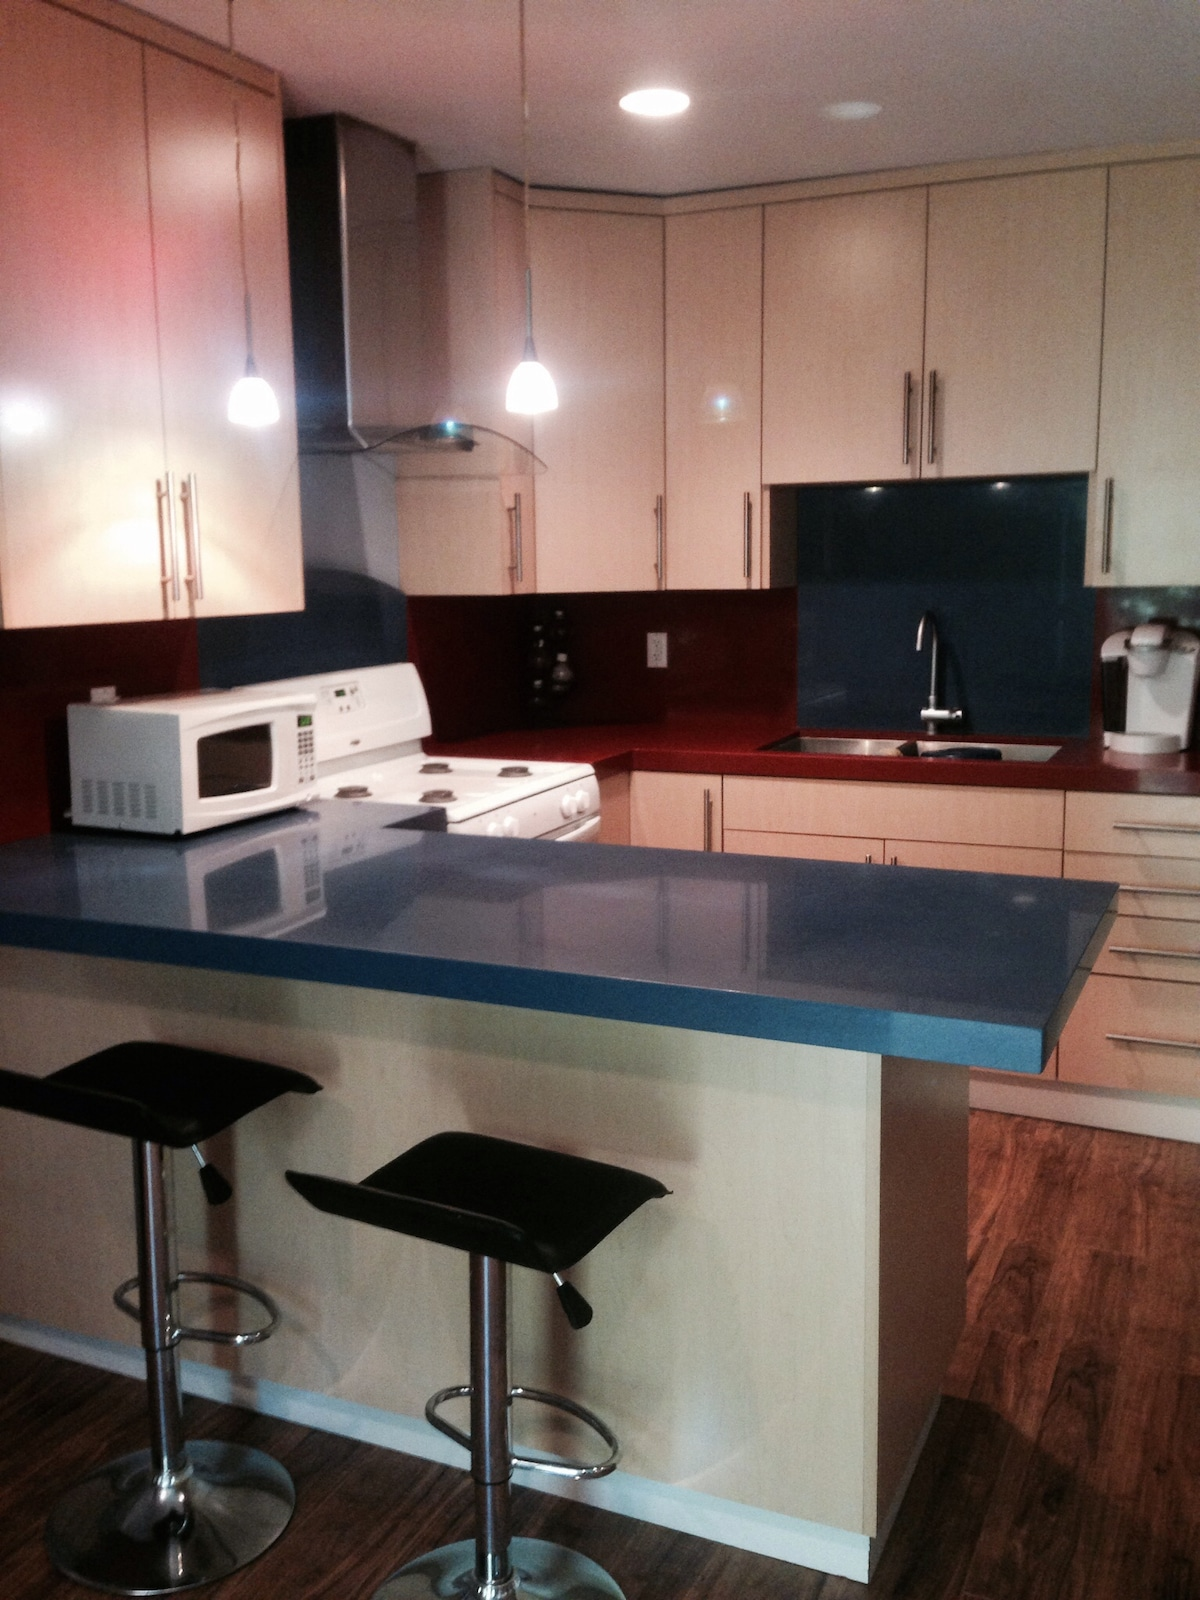 A fabulous kitchen, with everything you need for cooking and eating, a keurig coffee maker and full fridge with freezer.